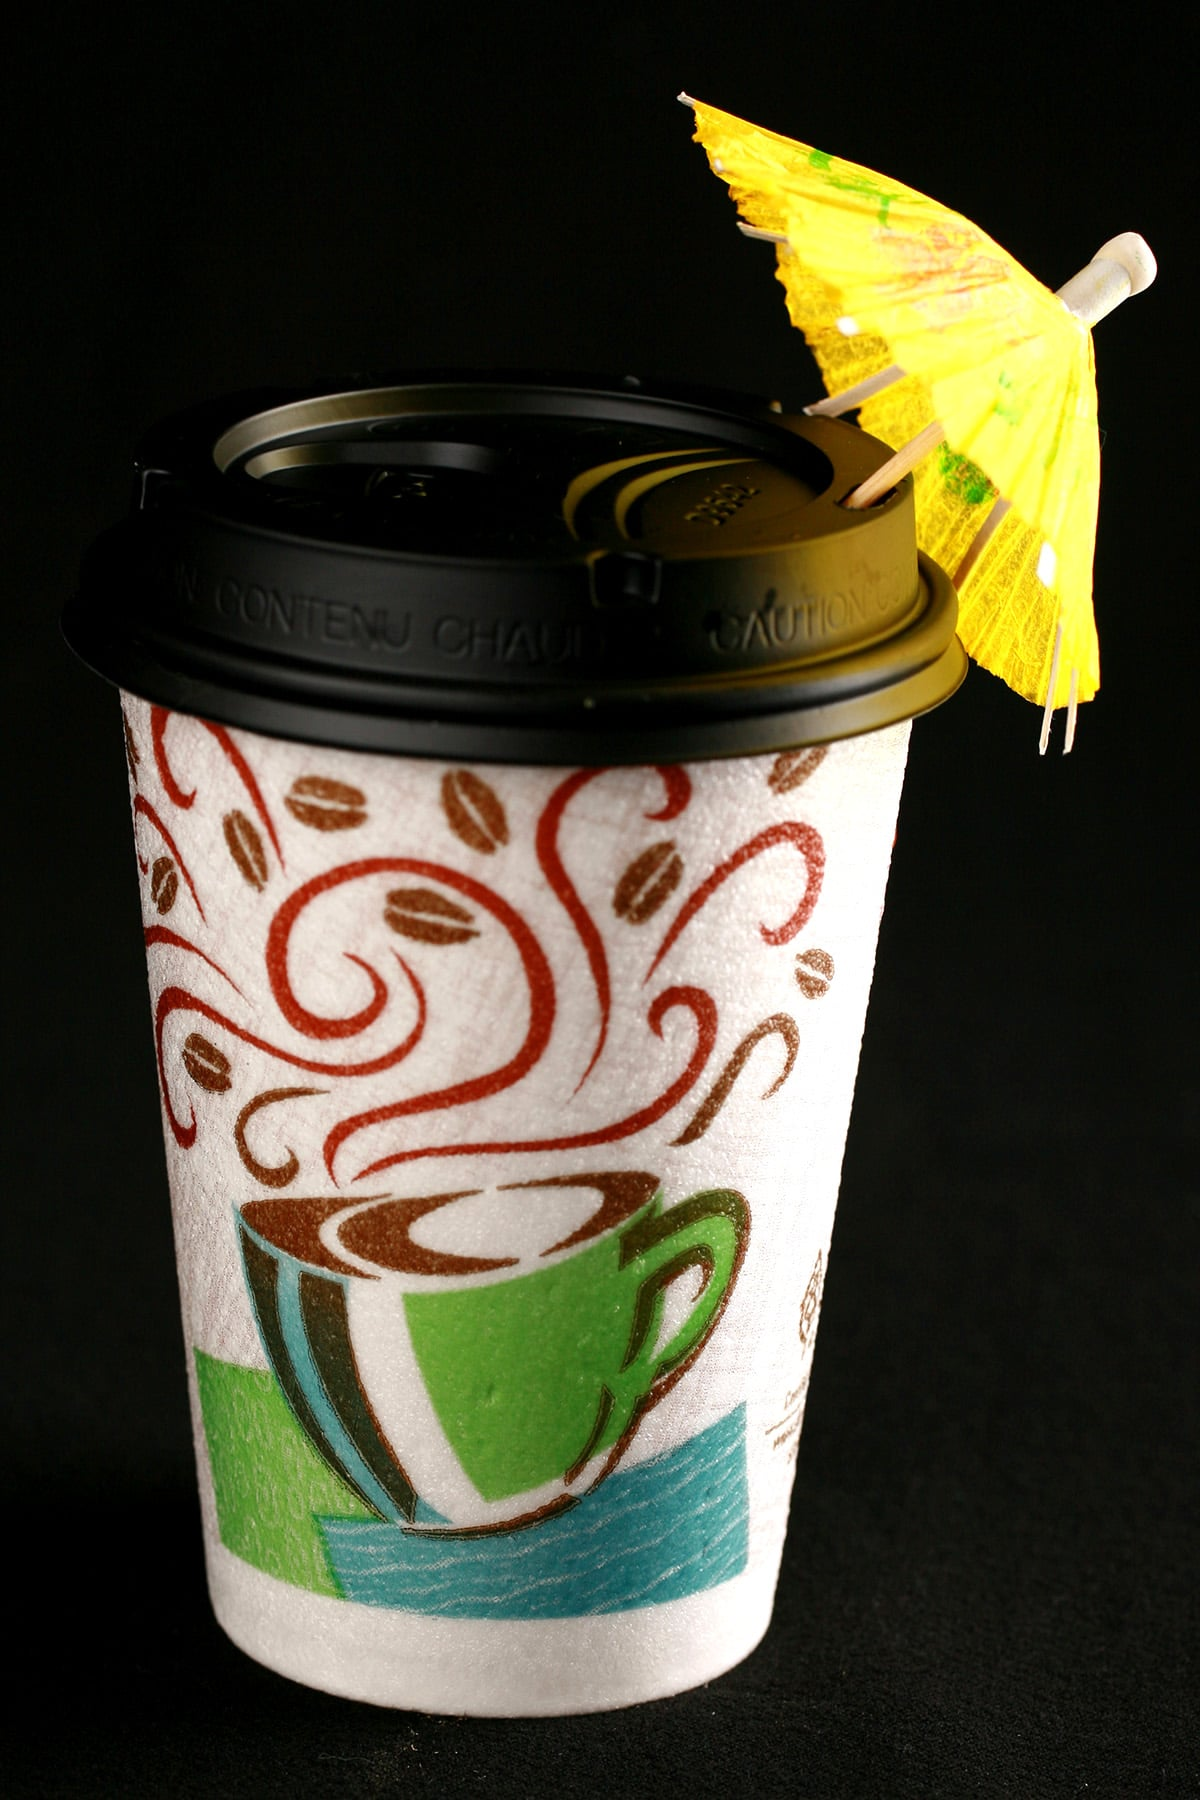 The Drinking In LA - a light pink fizzy cocktail in a hotel room disposable coffee cup. It is garnished with a yellow paper umbrella.